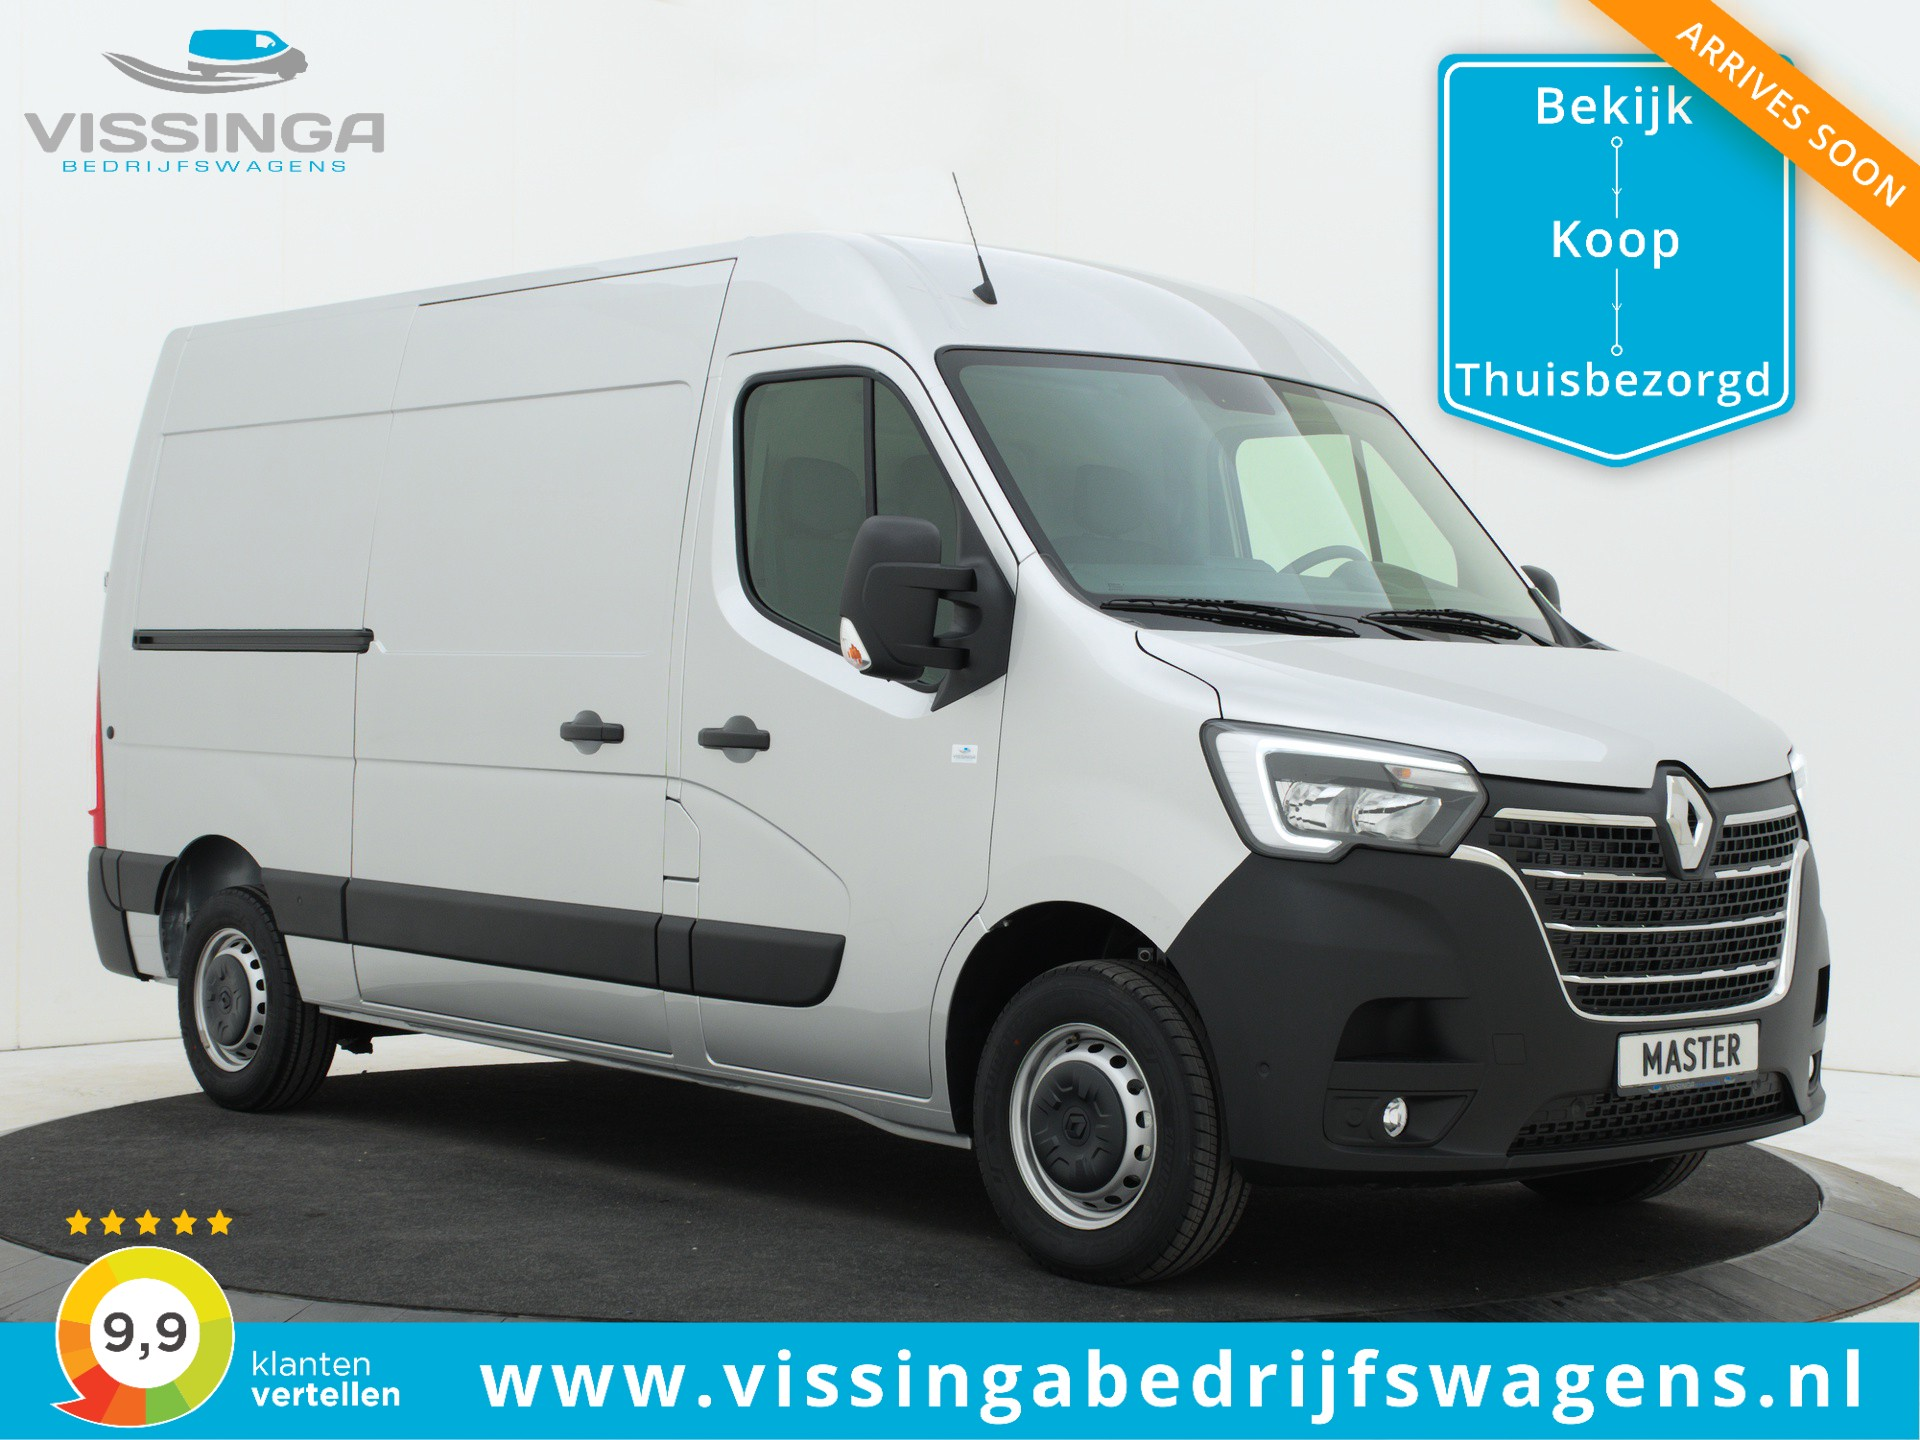 Renault Master T35 2.3 dCi L2H2 135 pk Twin-Turbo Light Duty